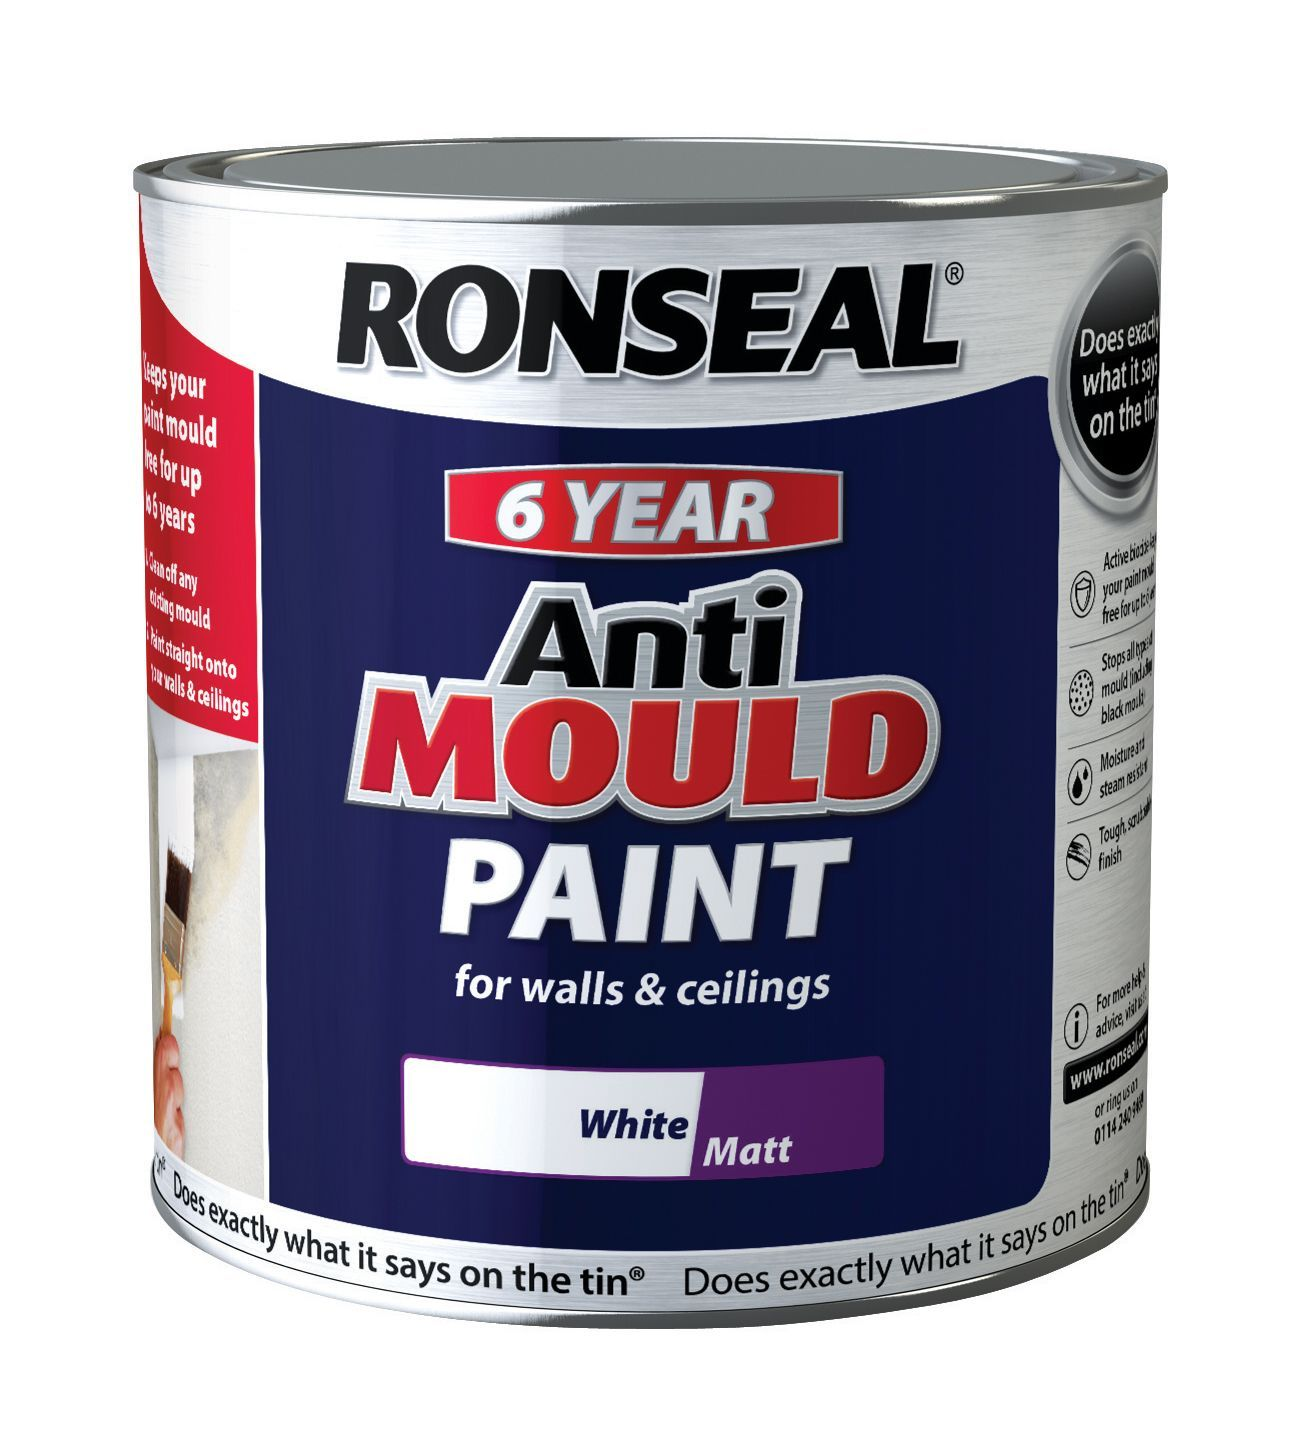 Ronseal Problem Wall Paints White Matt Anti Mould Paint 2 5l Departments Diy At B Q Mold In Bathroom Bathroom Mold Remover White Painting